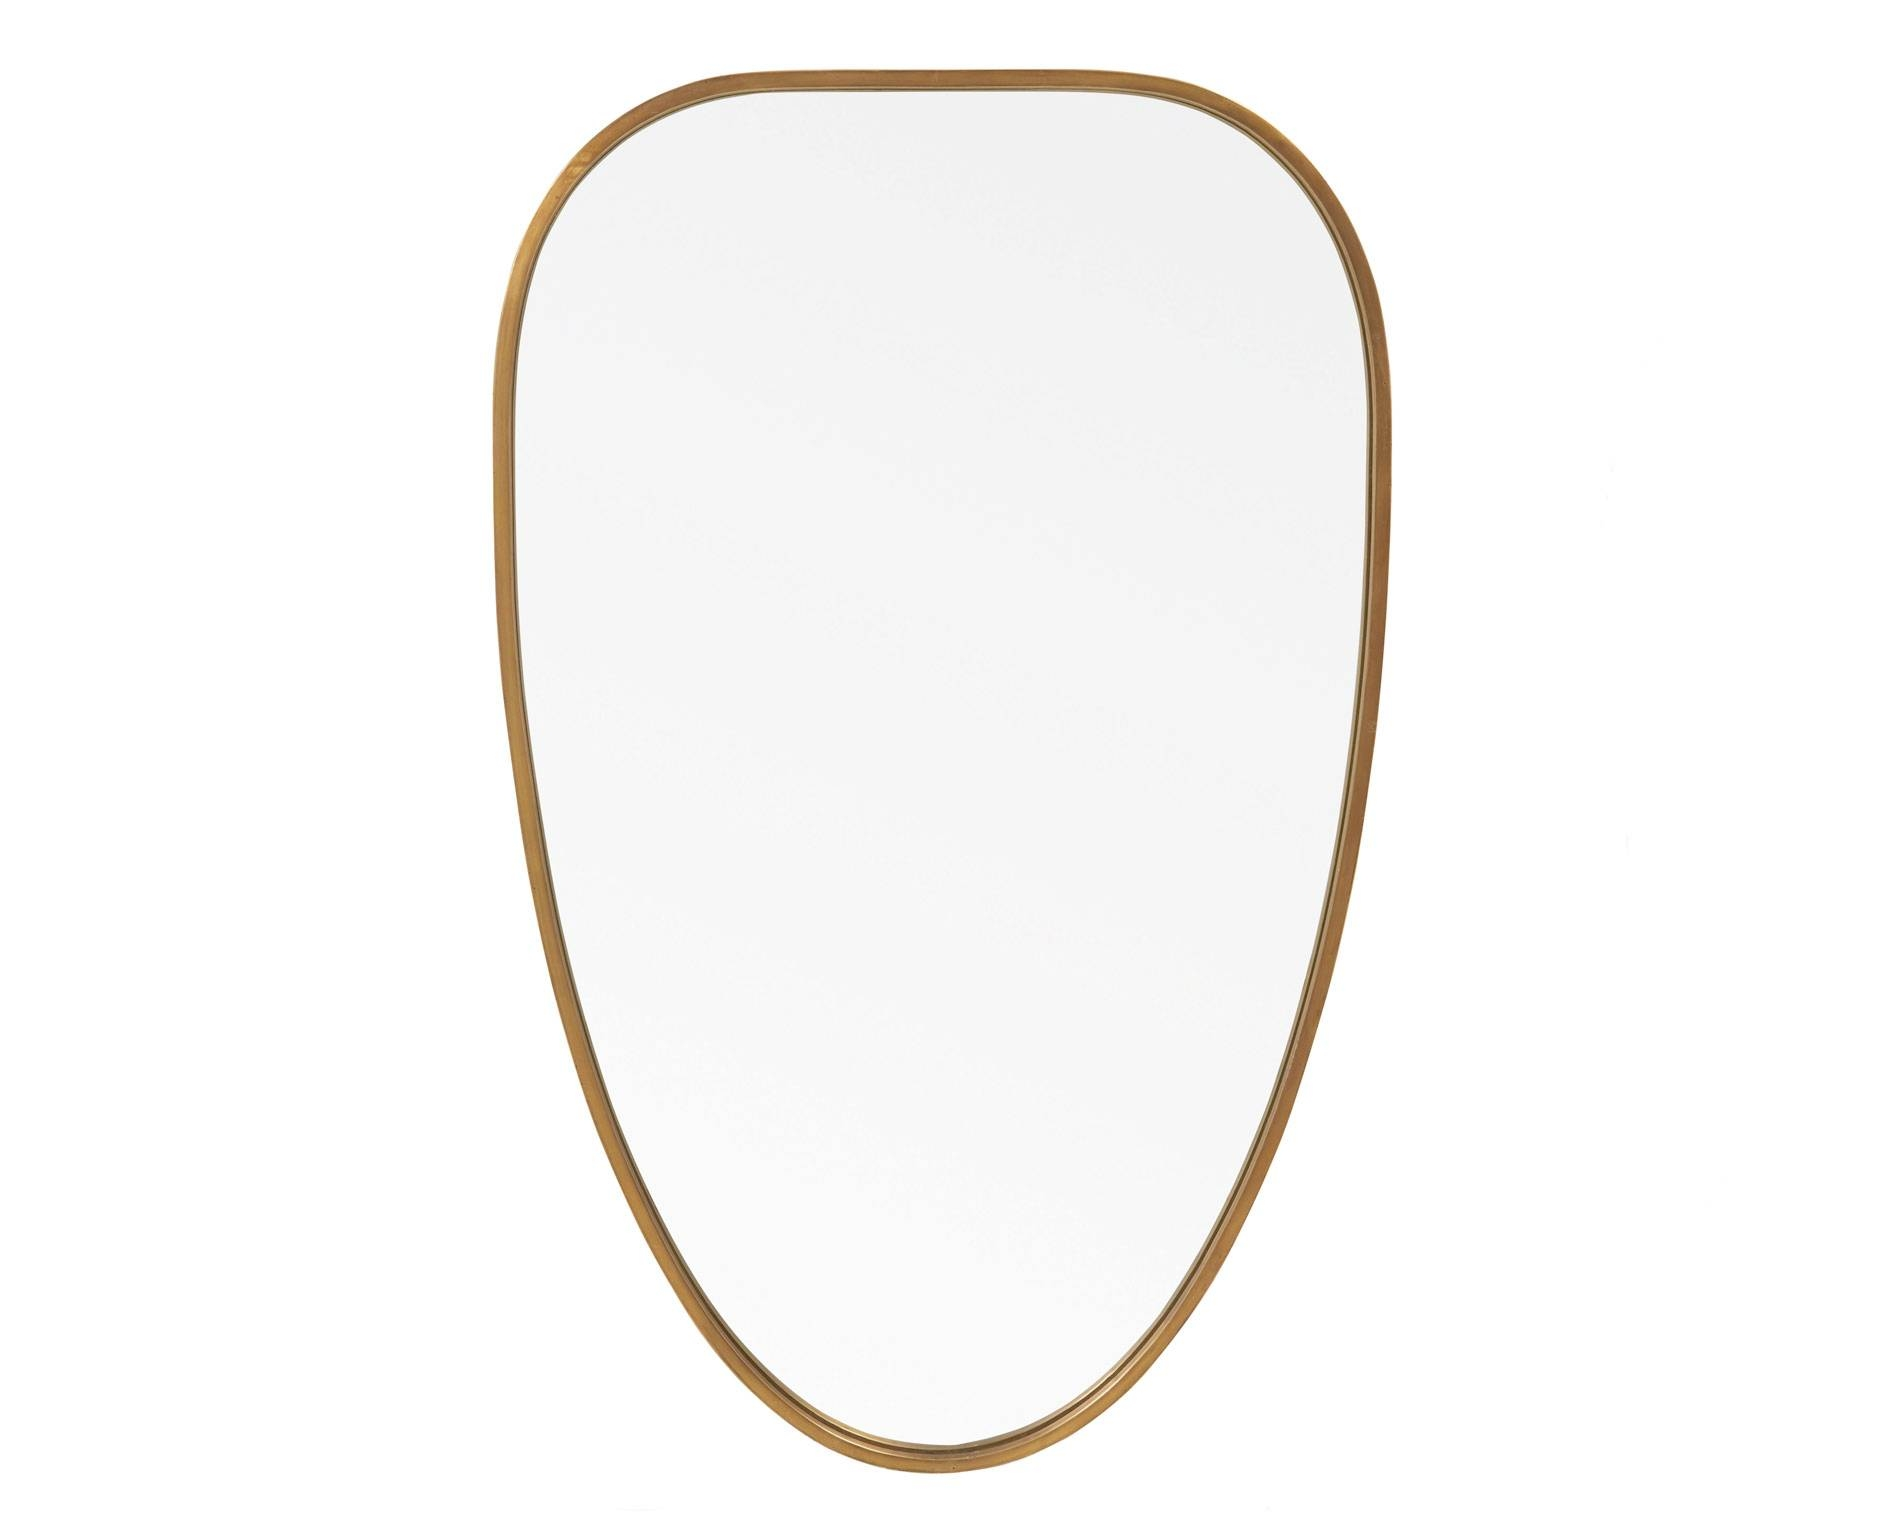 Easy Brass Mirror | Retro Wall Mirror | Loaf | Loaf regarding Retro Wall Mirrors (Image 15 of 25)